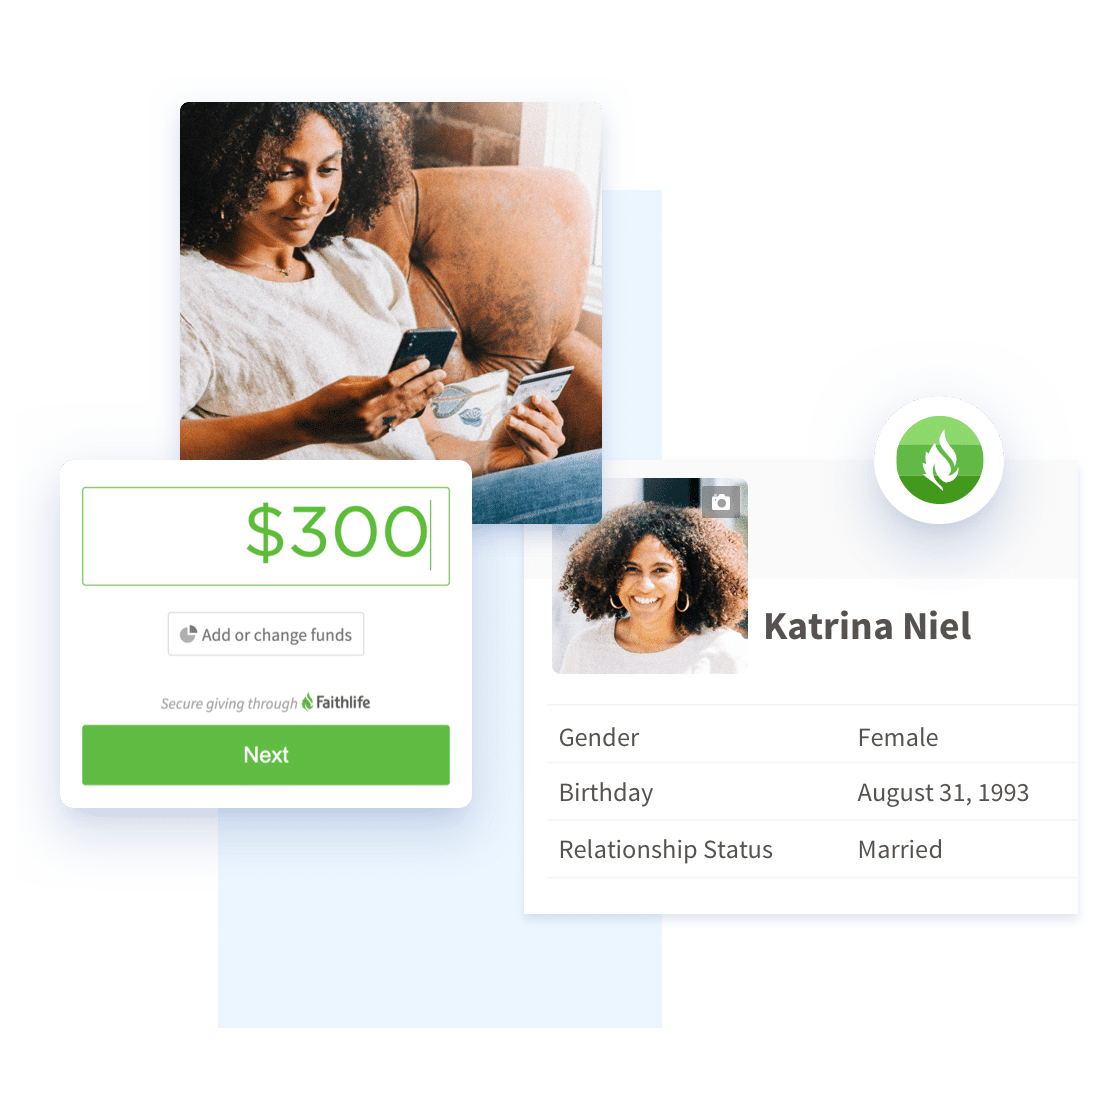 Image collage showing 2 people looking at a phone and the recurring payments menu and the giving form customization menu